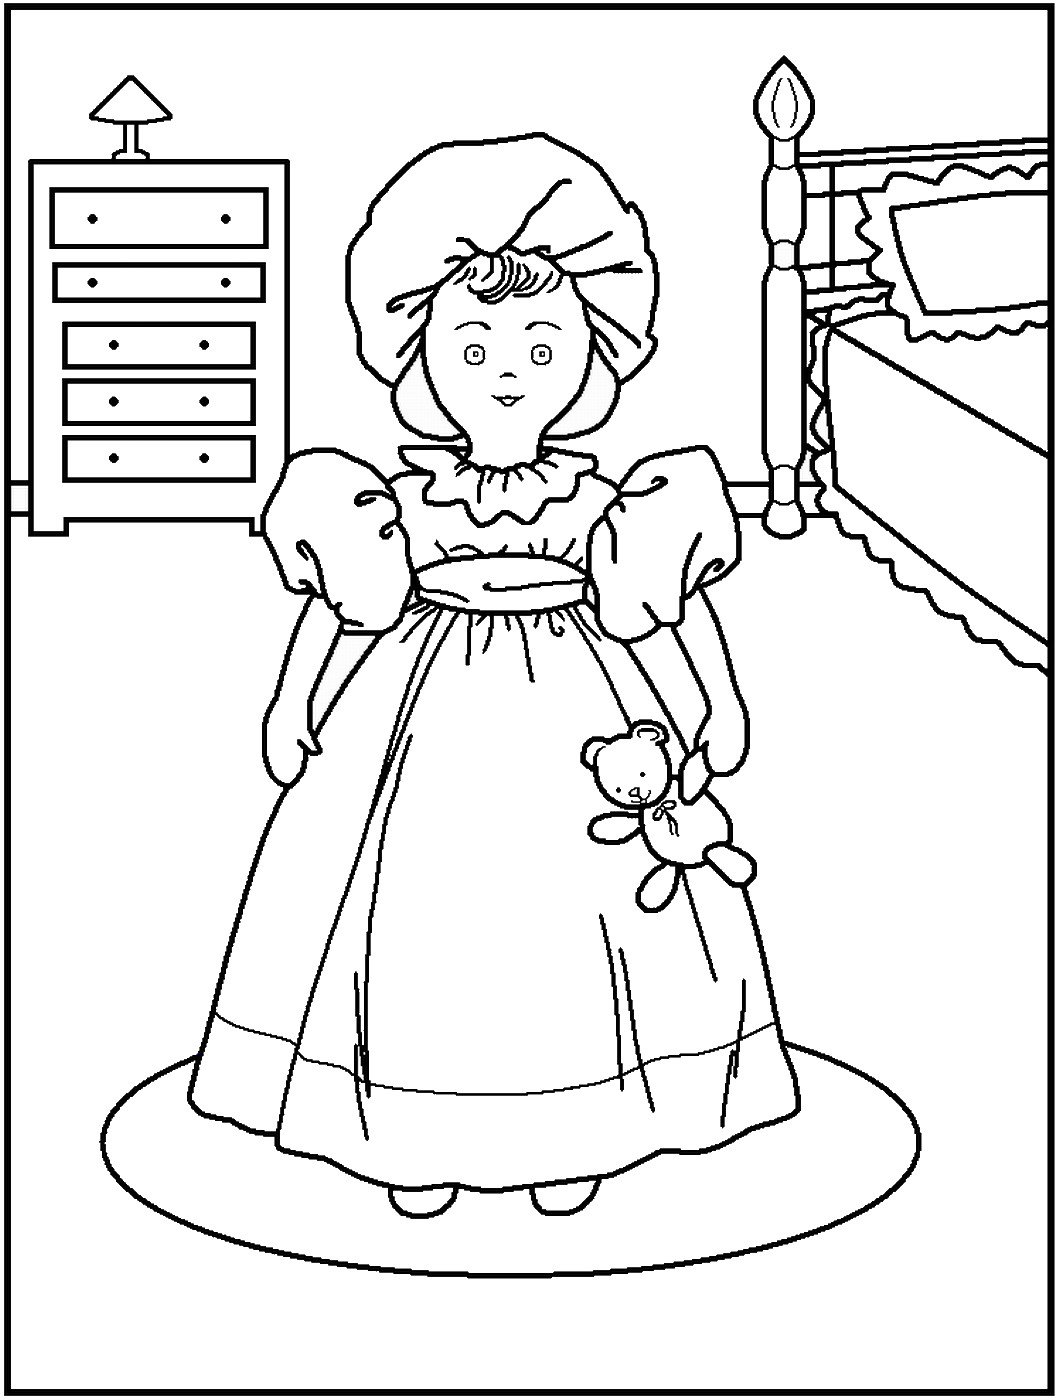 doll coloring sheets doll coloring pages getcoloringpagescom sheets doll coloring